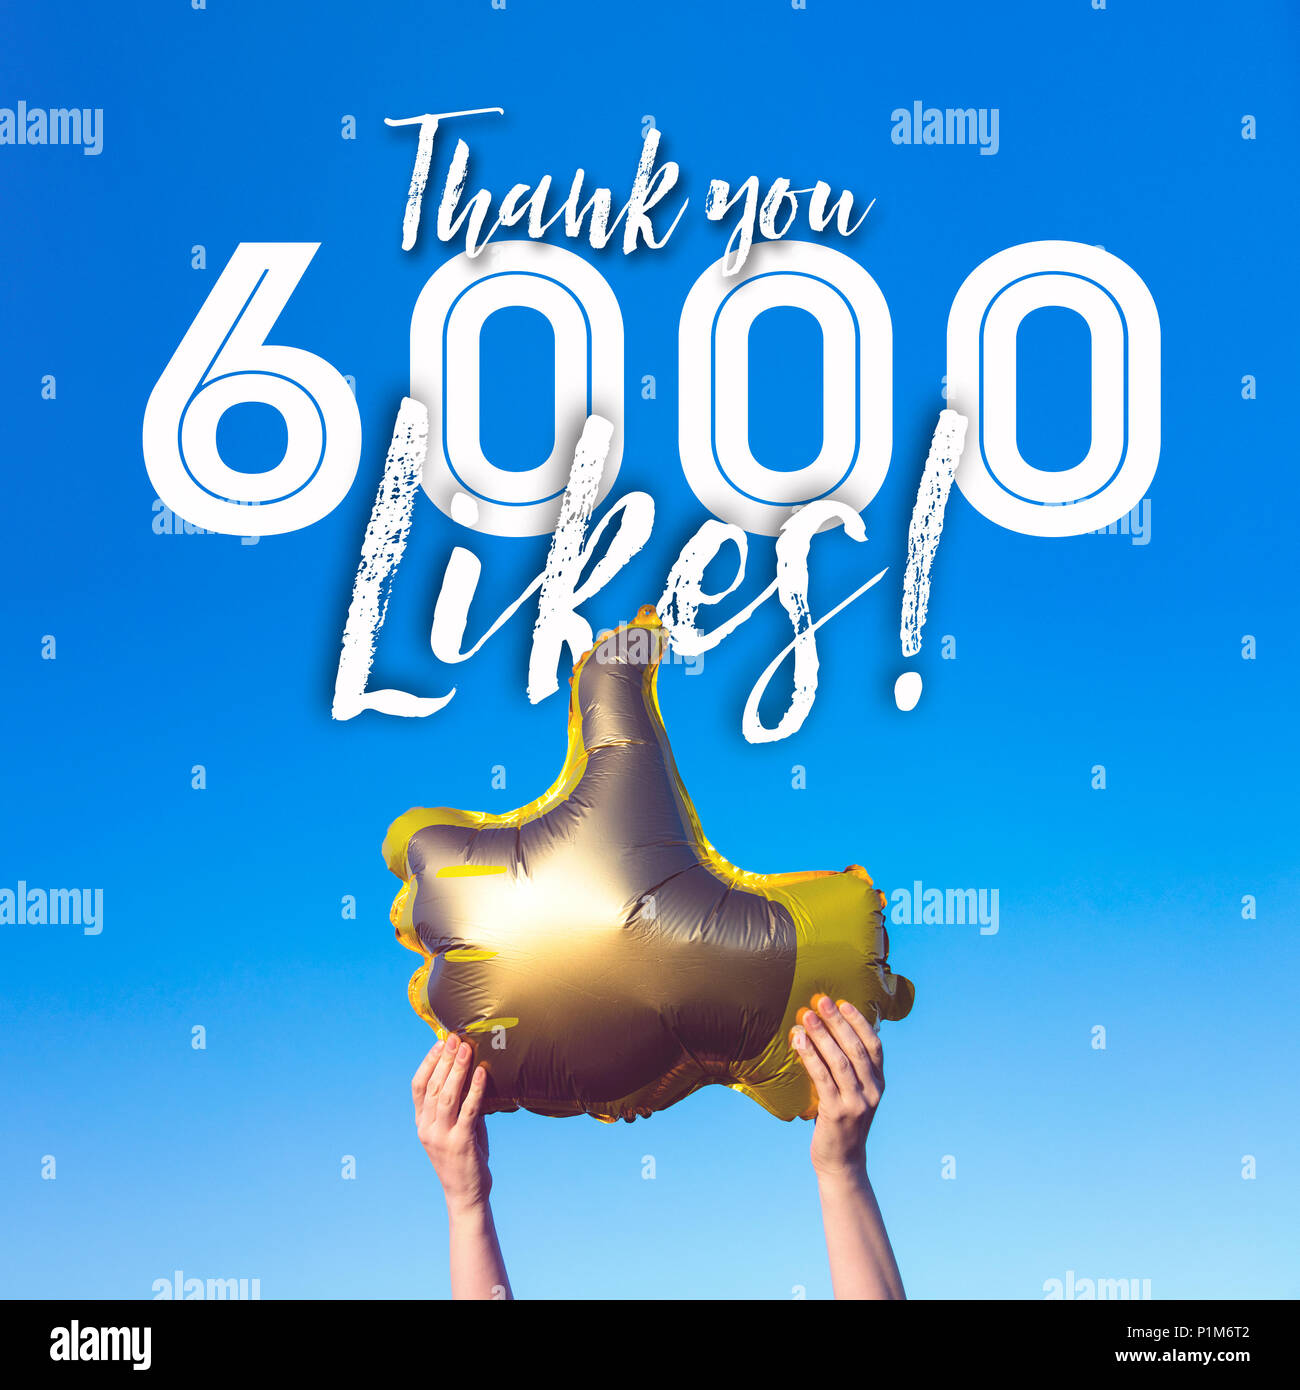 Thank you 6000 likes gold thumbs up like balloons social media template banner - Stock Image